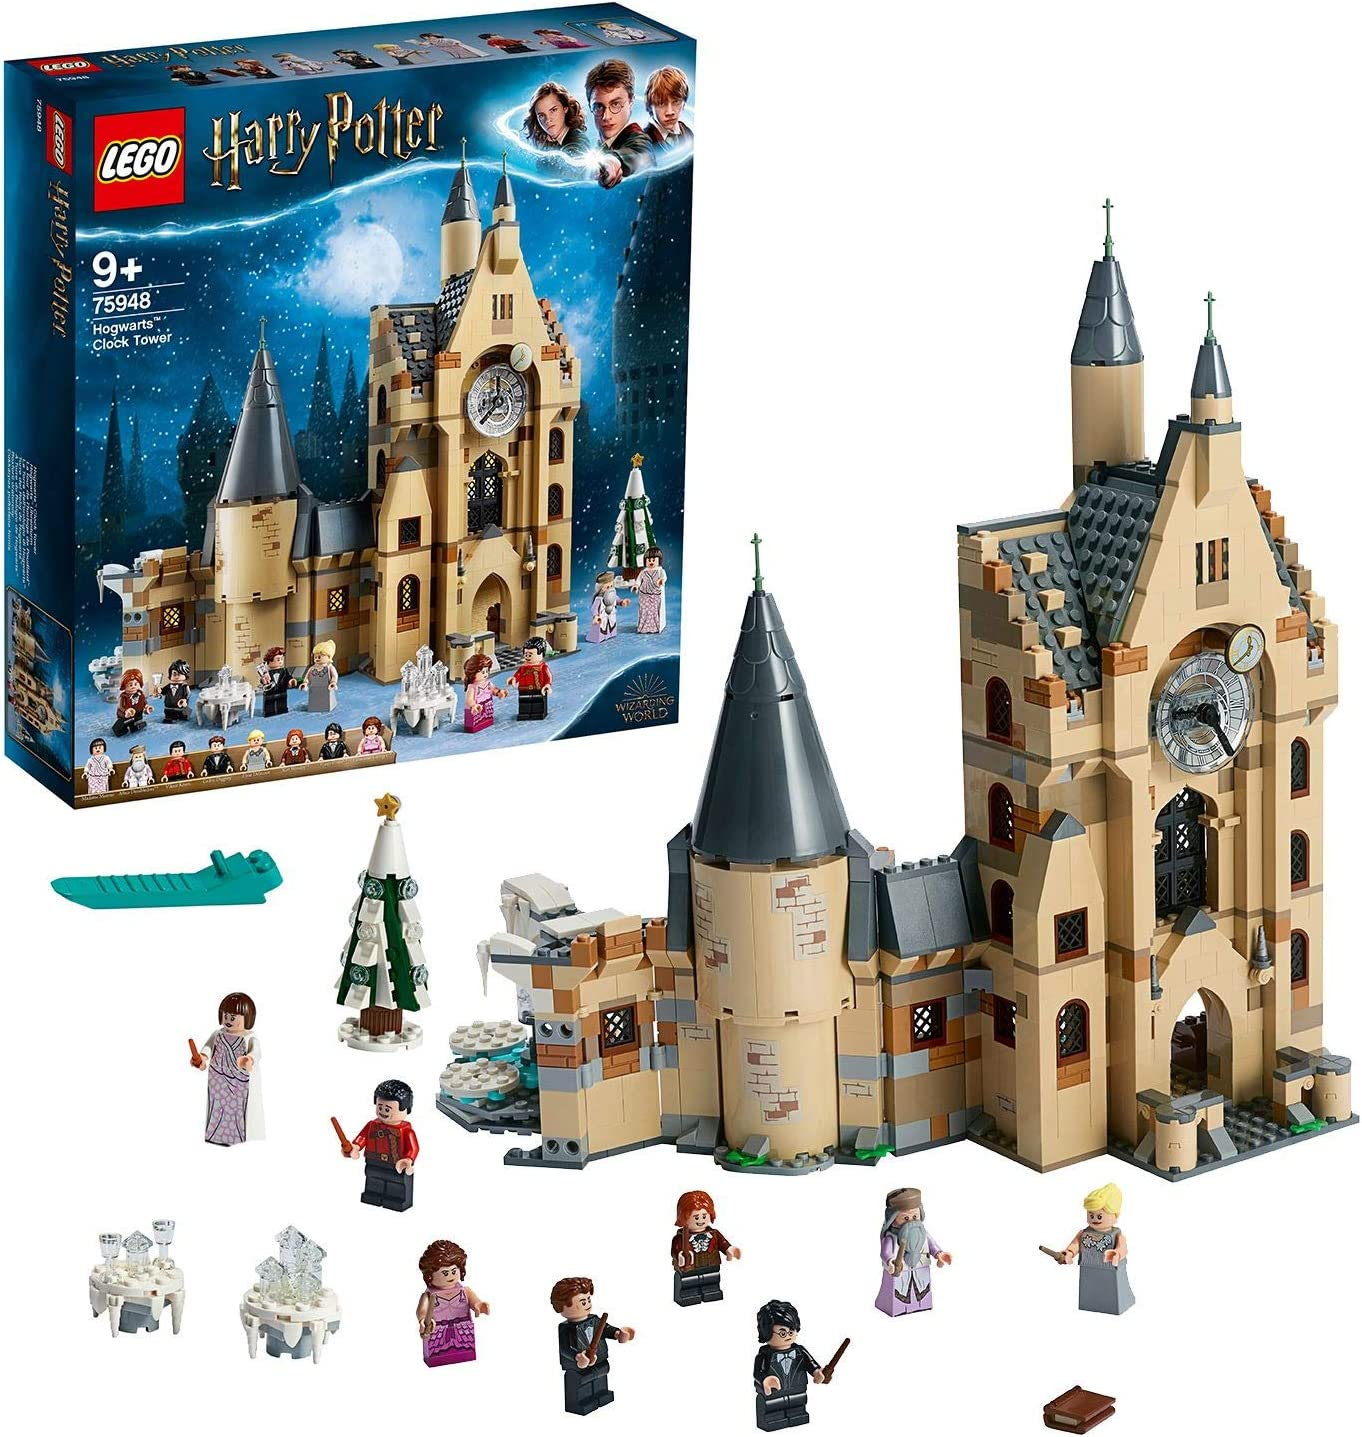 Lego 75948 Harry Potter Hogwarts Clock Tower Toy Compatible With The Great Hall And The Whomping Willow Sets Amazon De Spielzeug